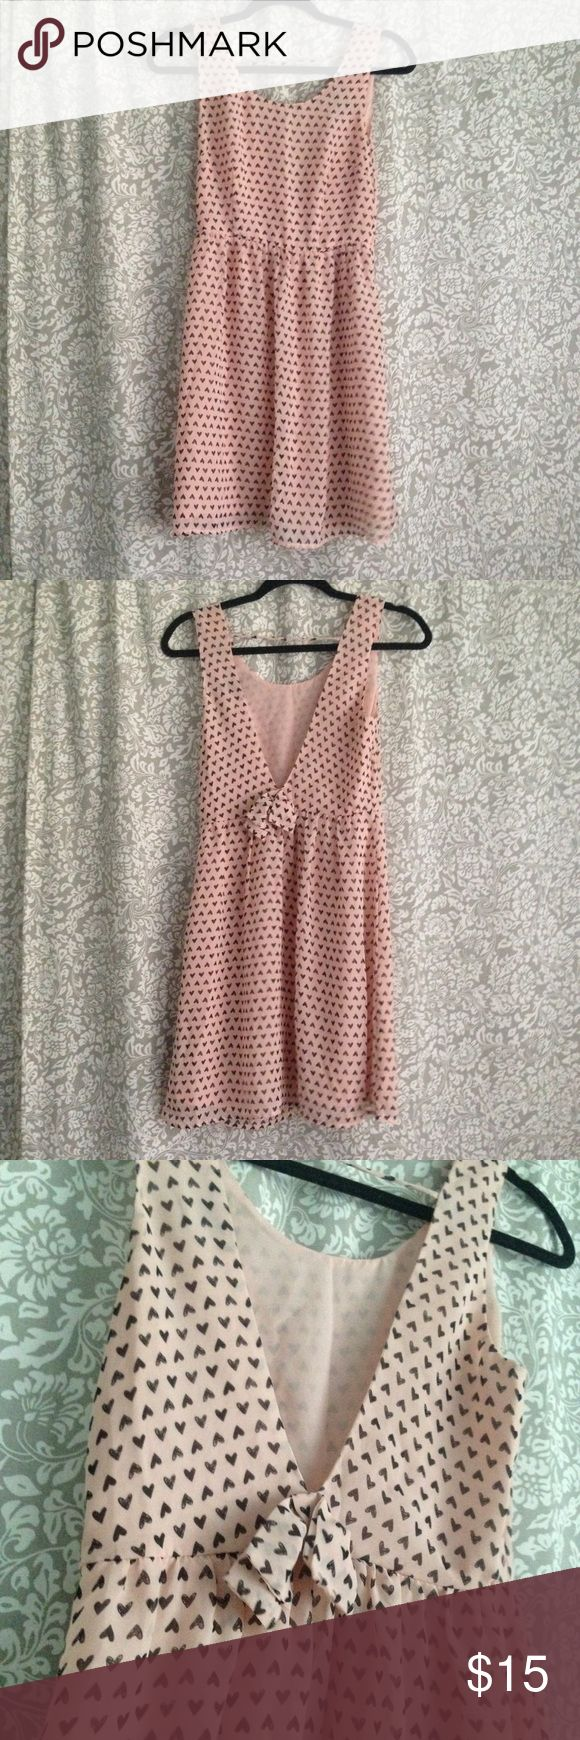 Like New | Heart Print Open Back Dress Light pink open back dress, size S. Heart print with bow accent on back. Worn only a few times, excellent condition. Forever 21 Dresses Midi